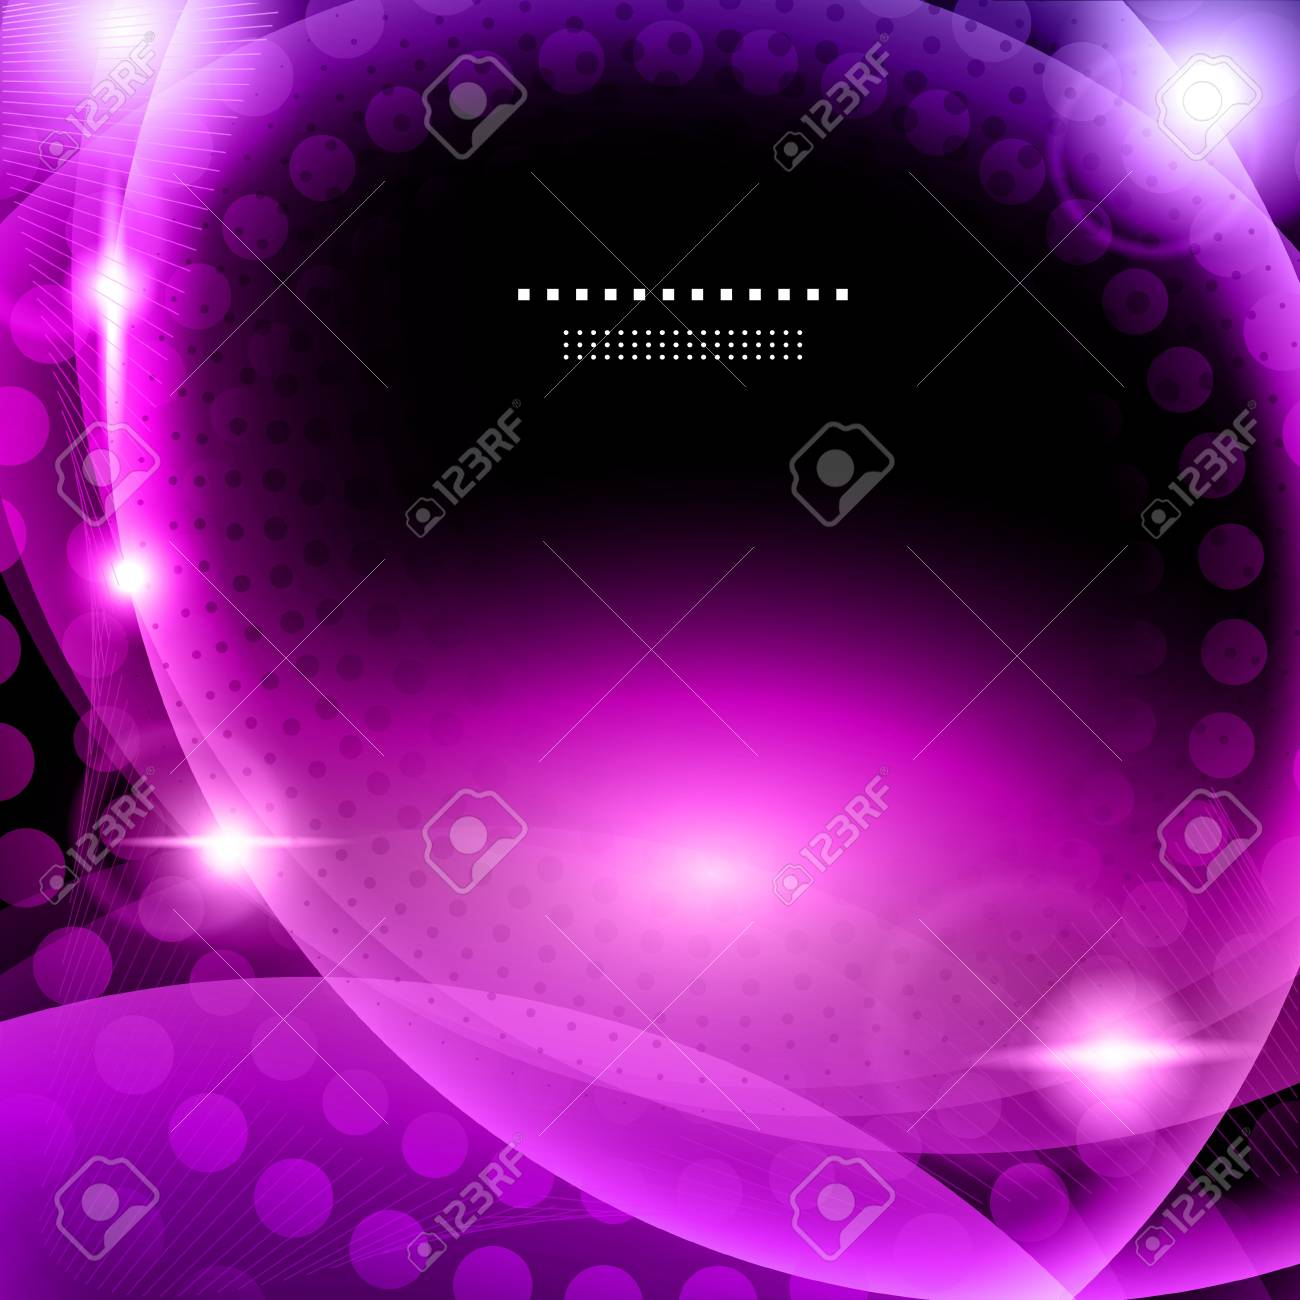 Shiny purple abstract background eps10 vector illustration Stock Vector - 17982850